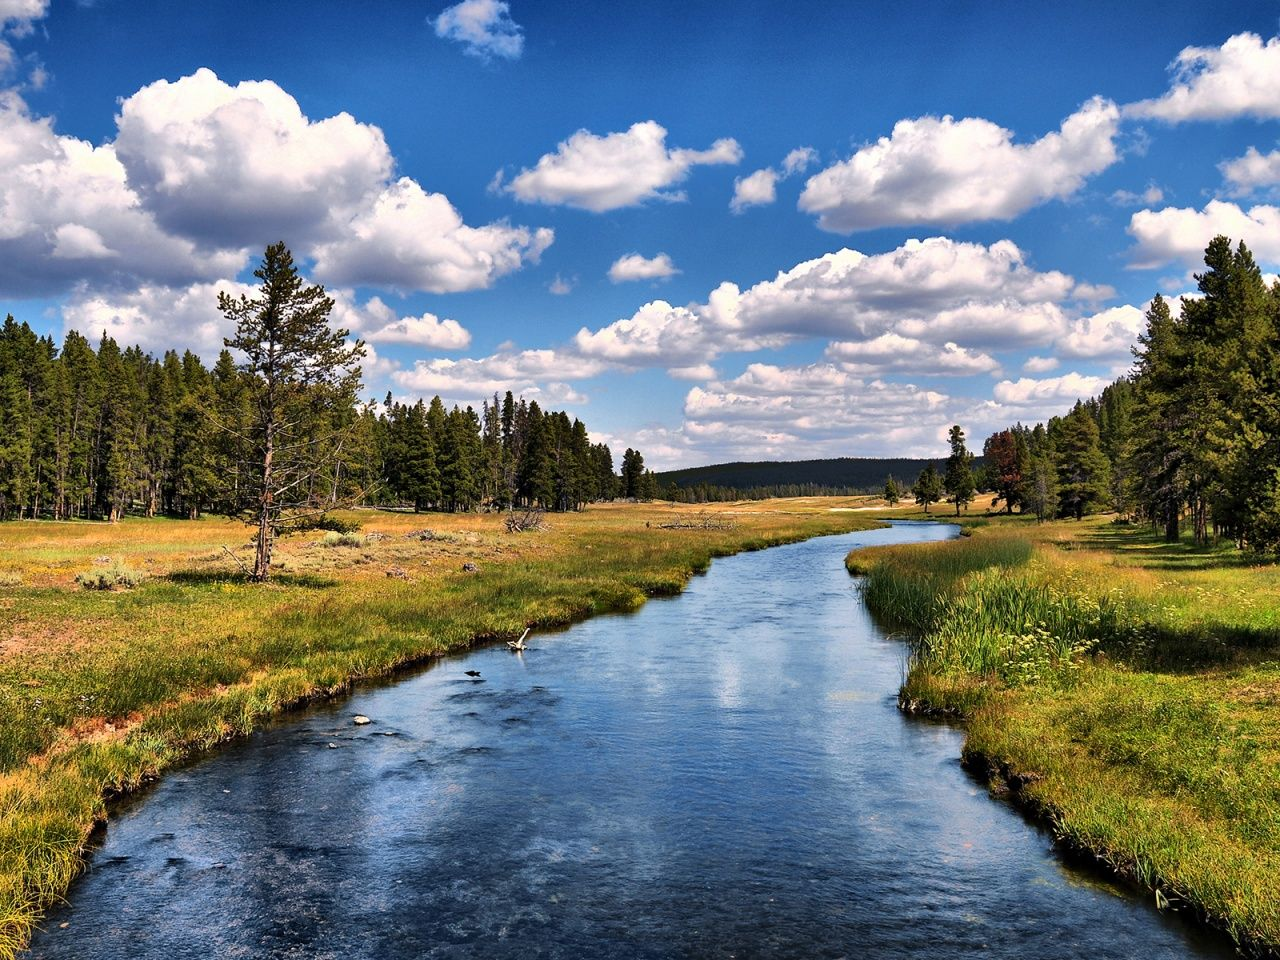 Yellowstone National Park With Images Hd Landscape Hd Nature